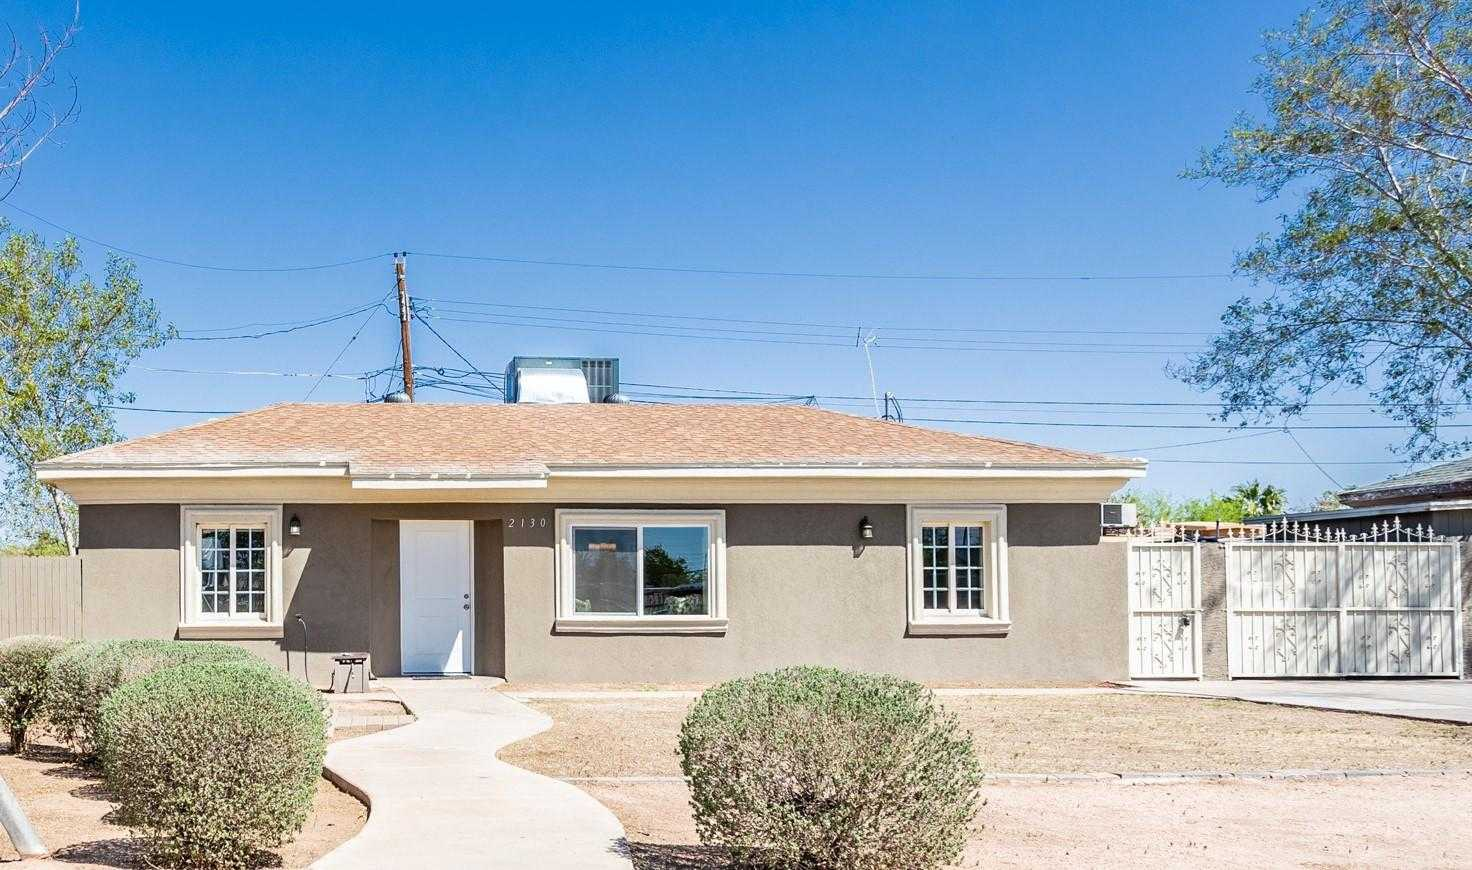 $330,000 - 4Br/2Ba - Home for Sale in Bumbalow Heights Blk 3, Lots 7-13, Phoenix